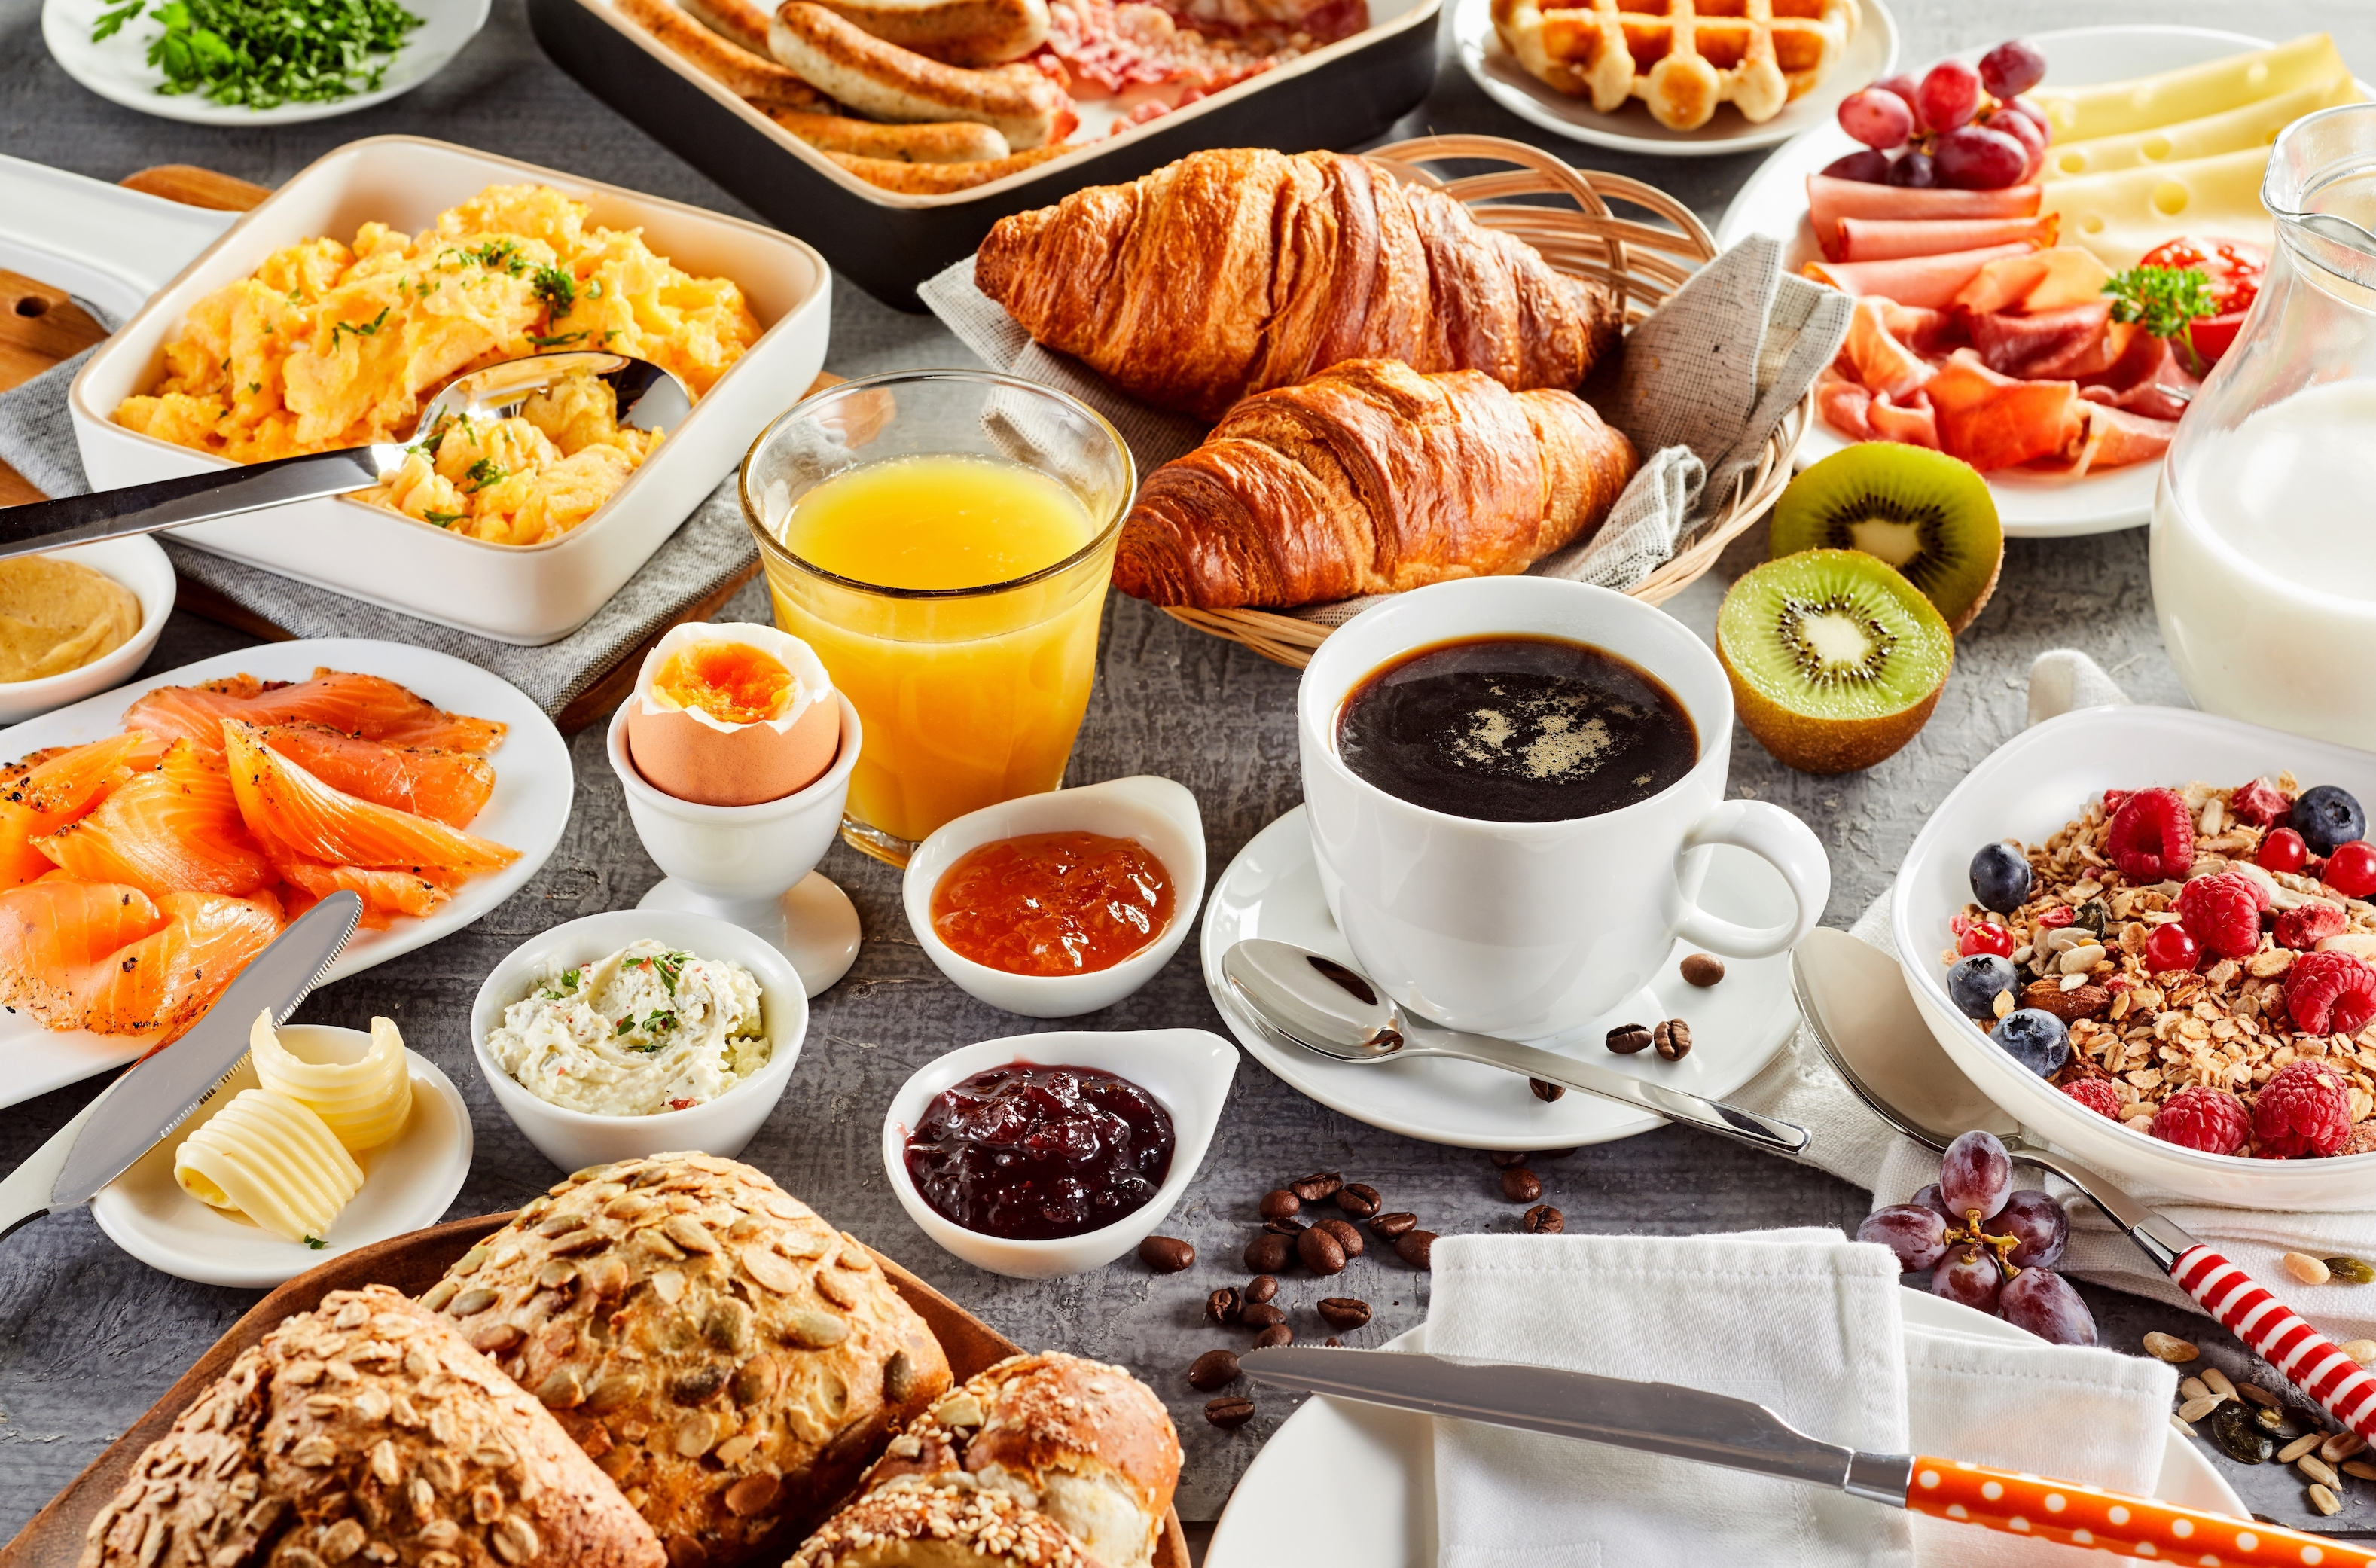 4 Common Breakfast Foods Diabetics Should Avoid Healthversed